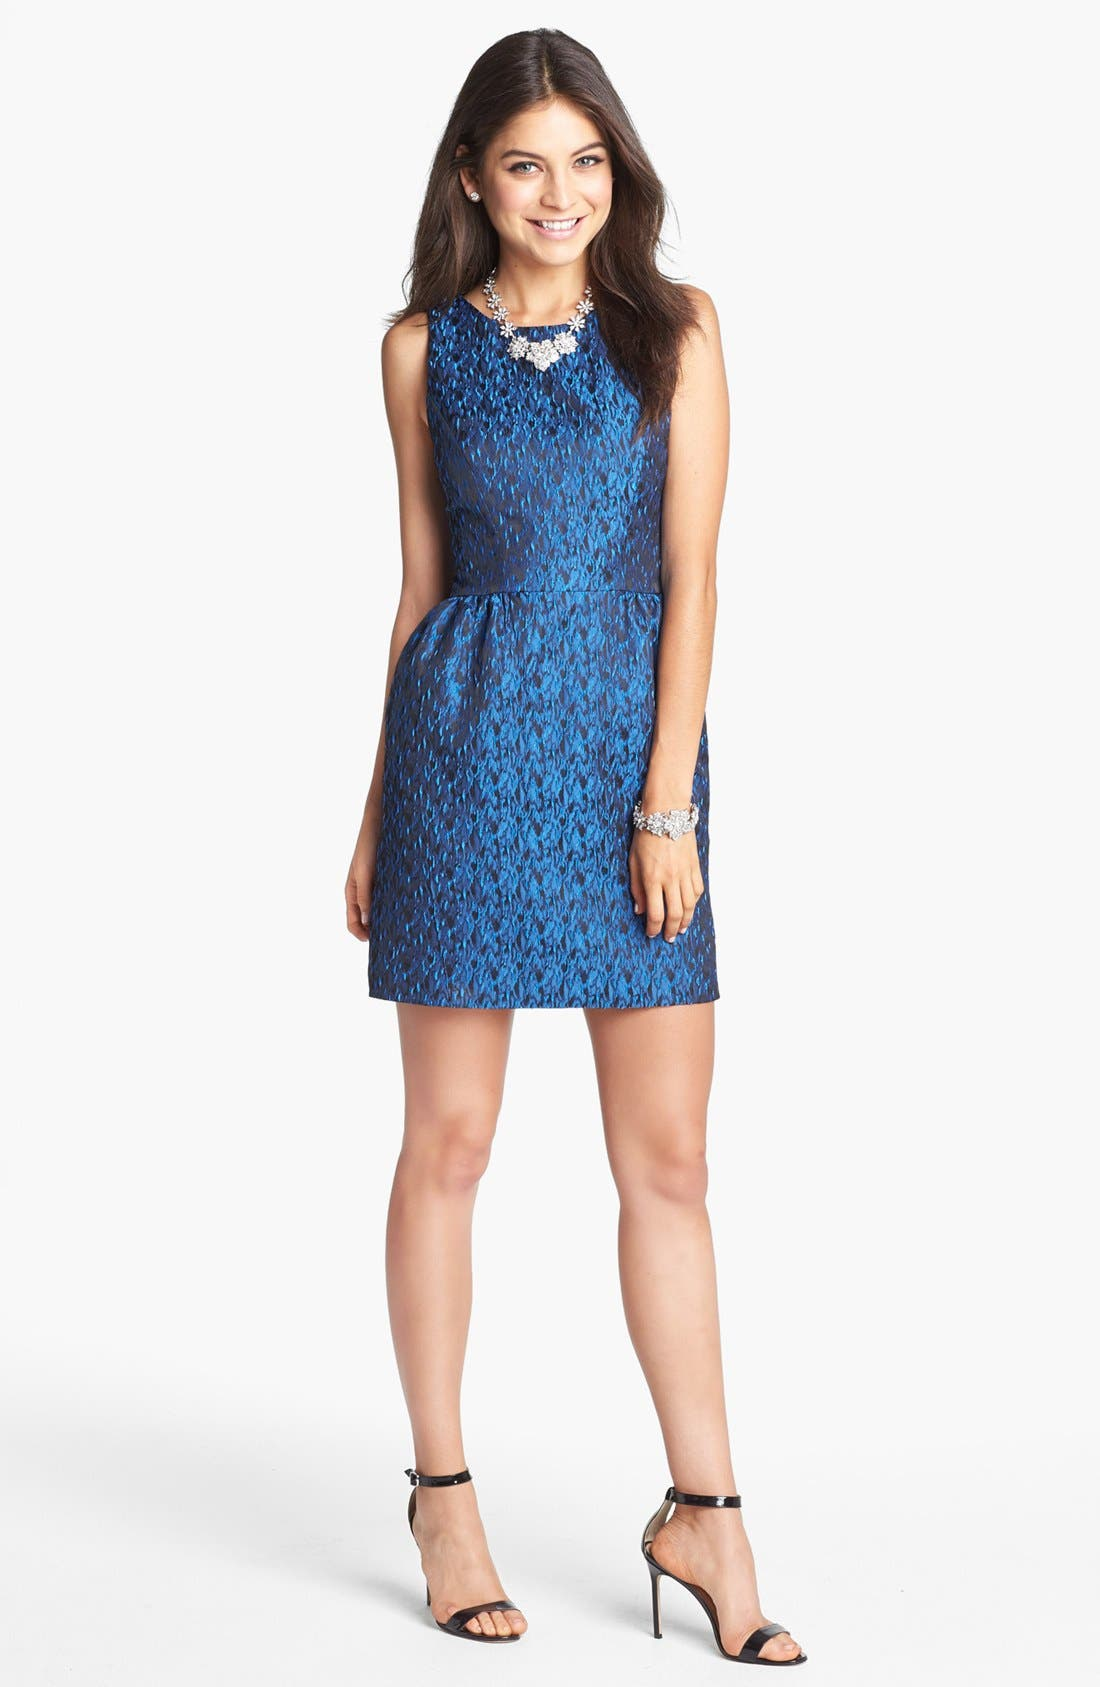 Main Image - ERIN erin fetherston 'Winnie' Jacquard Sheath Dress